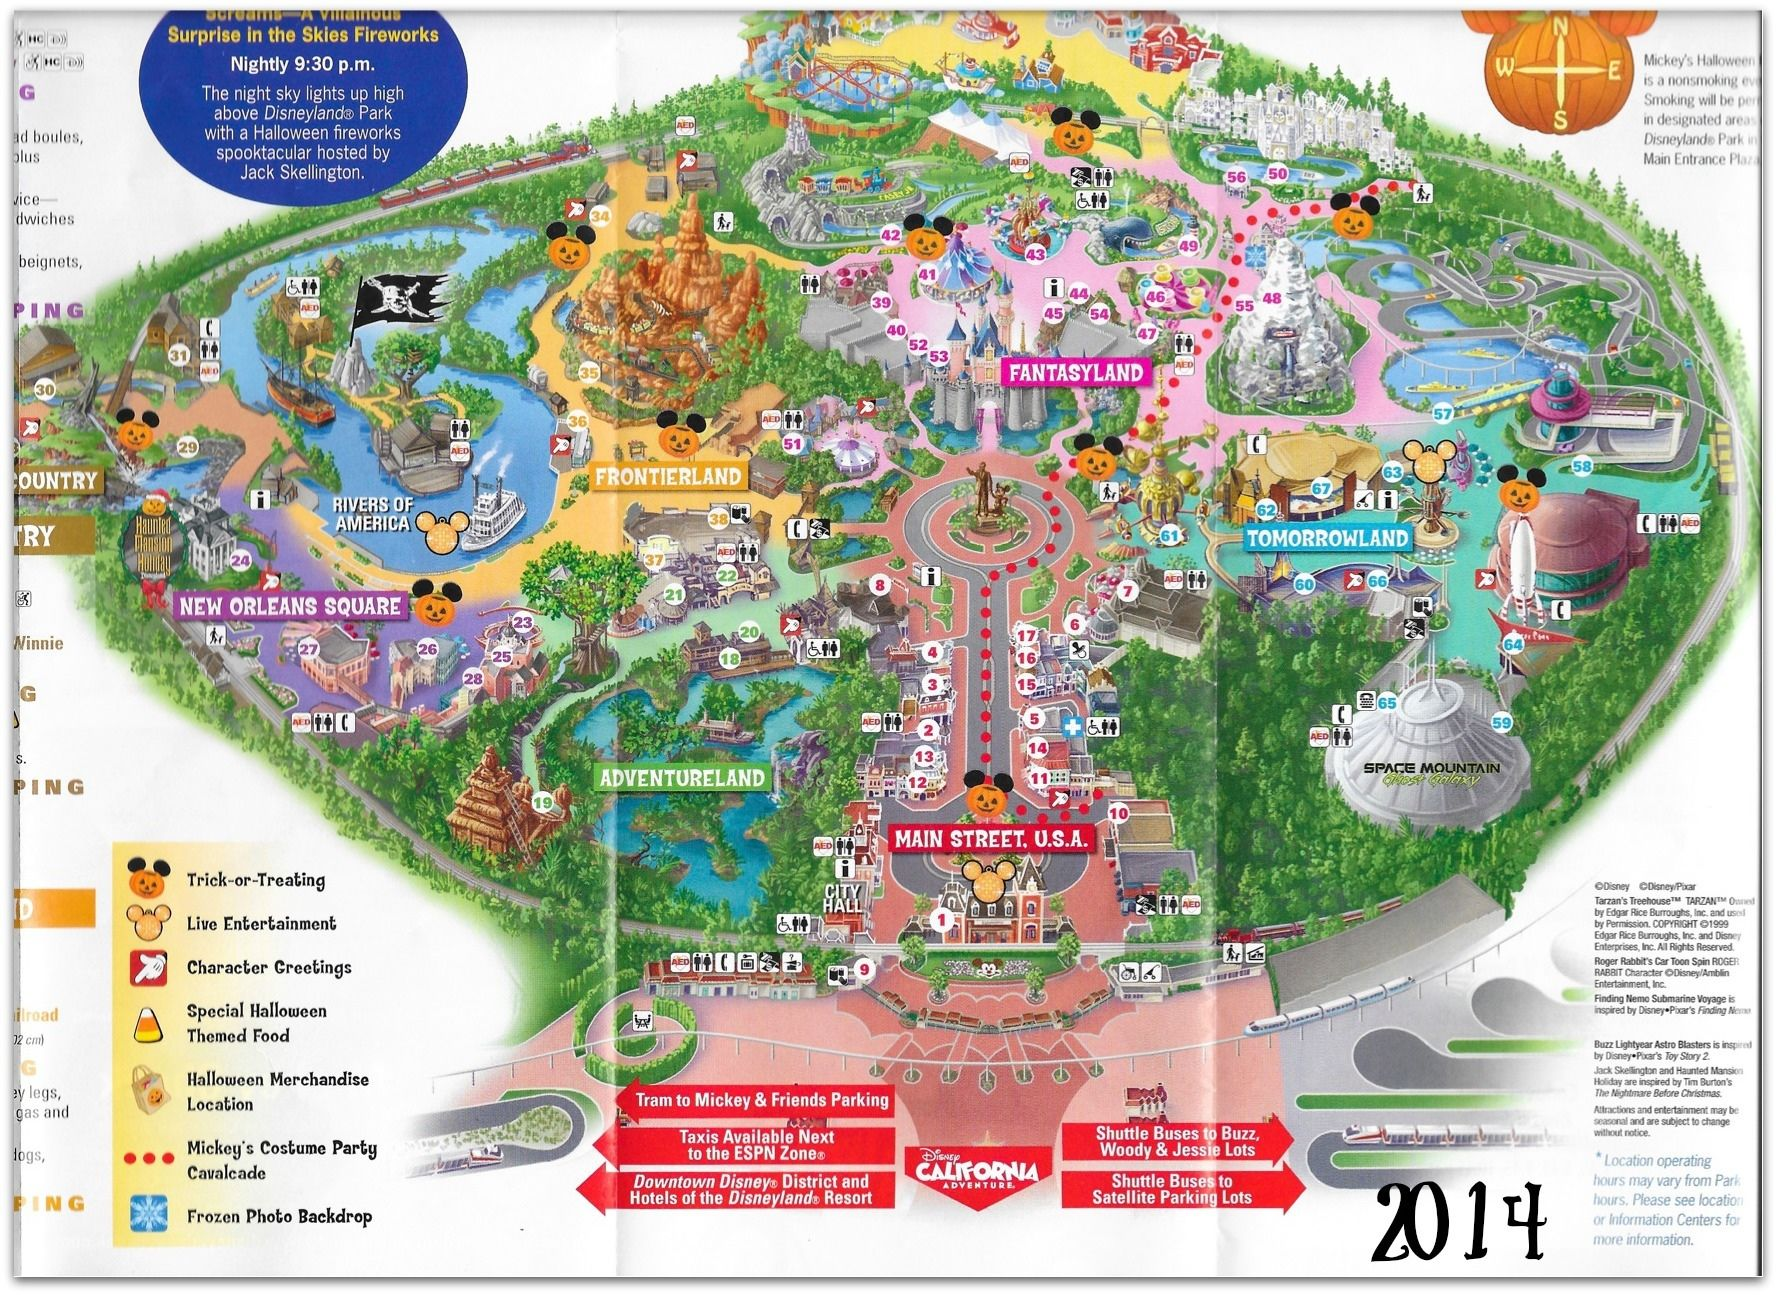 Mickeys-Halloween-Party-Map.jpg